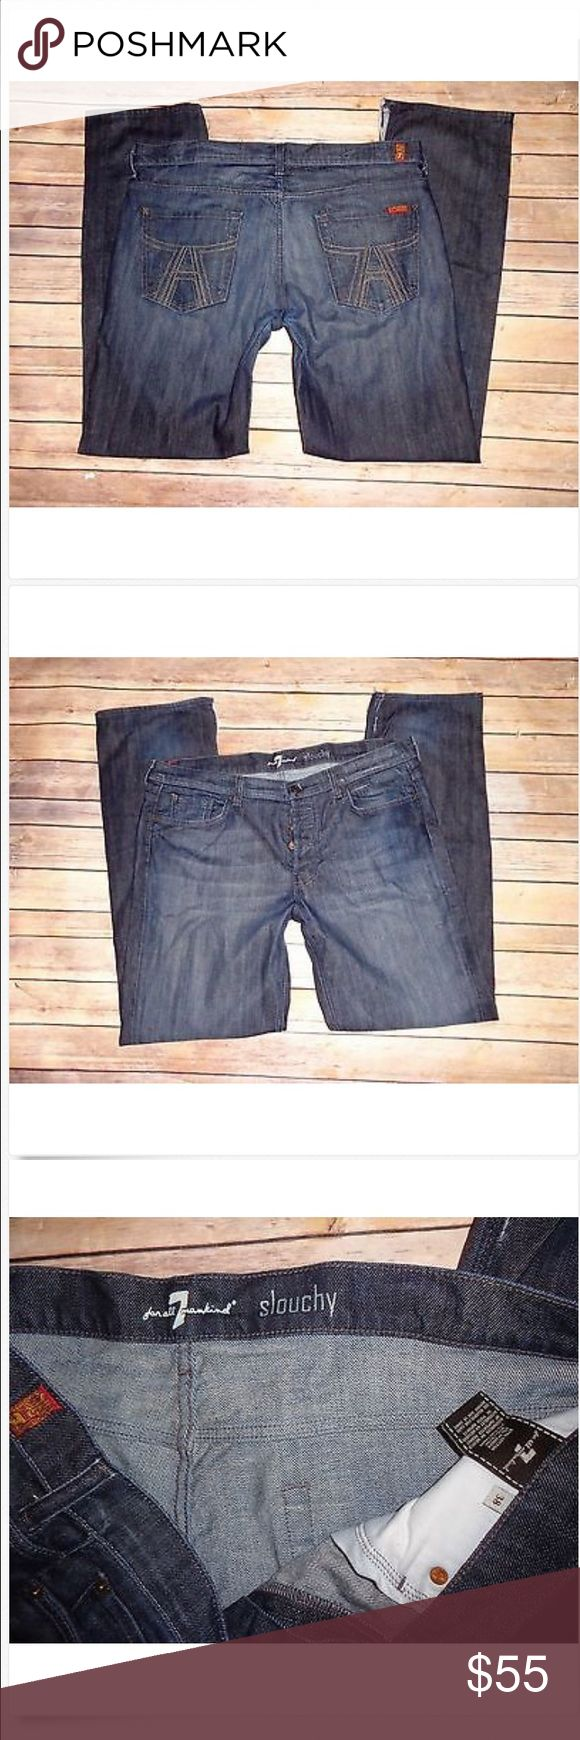 Men's 7 For All Mankind SLOUCHY Jeans! 38 x 33.5 Men's 7 For All Mankind Low Button Fly SLOUCHY Loose Jeans! 38 x 33.5 Long! Great Used!! Jeans are split at bottom hems..see pic 97% cotton & 3% spandex 19.5 across & 10 rise 7 For All Mankind Jeans Slim Straight